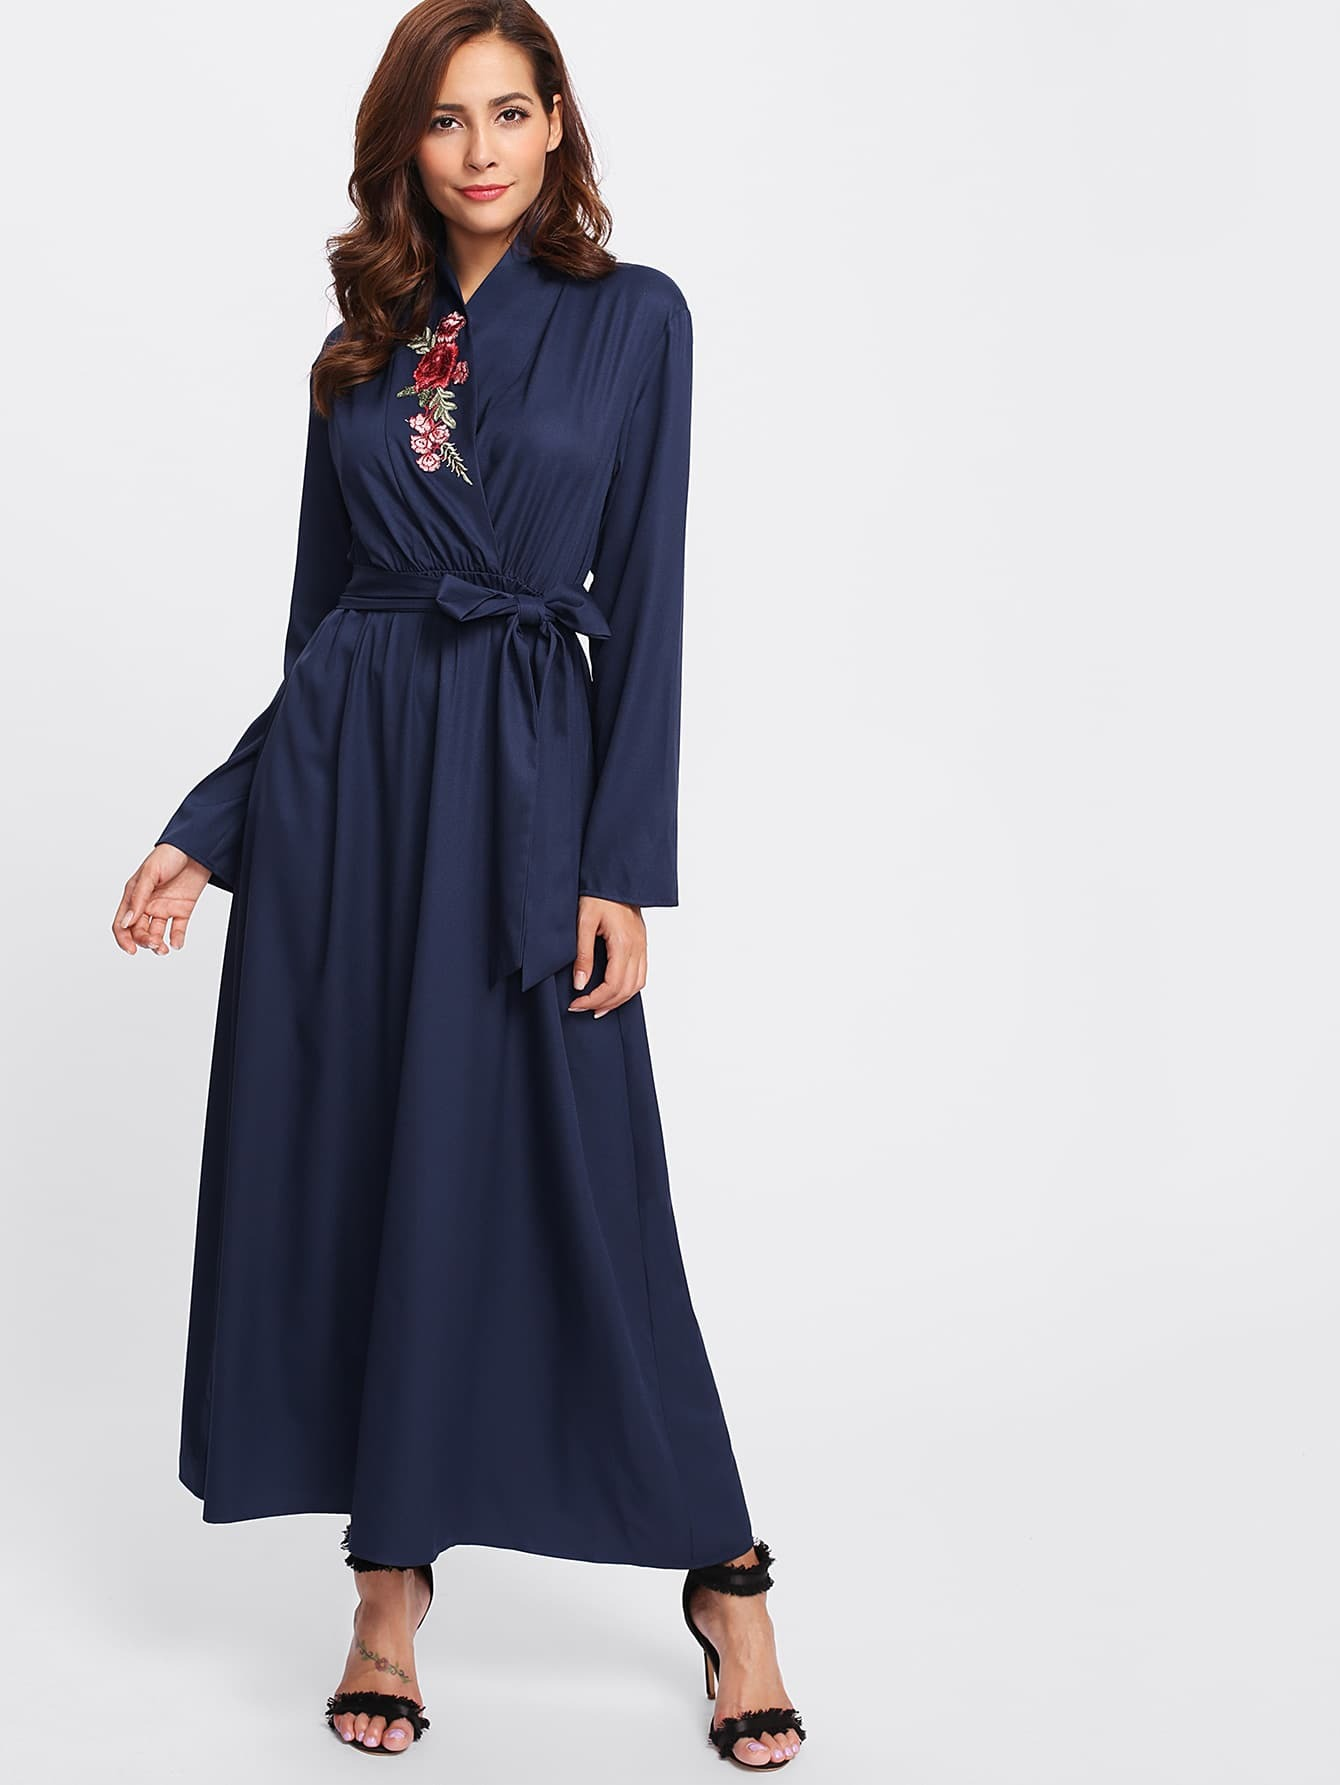 Image of Applique Detail Surplice Front Belted Hijab Long Dress